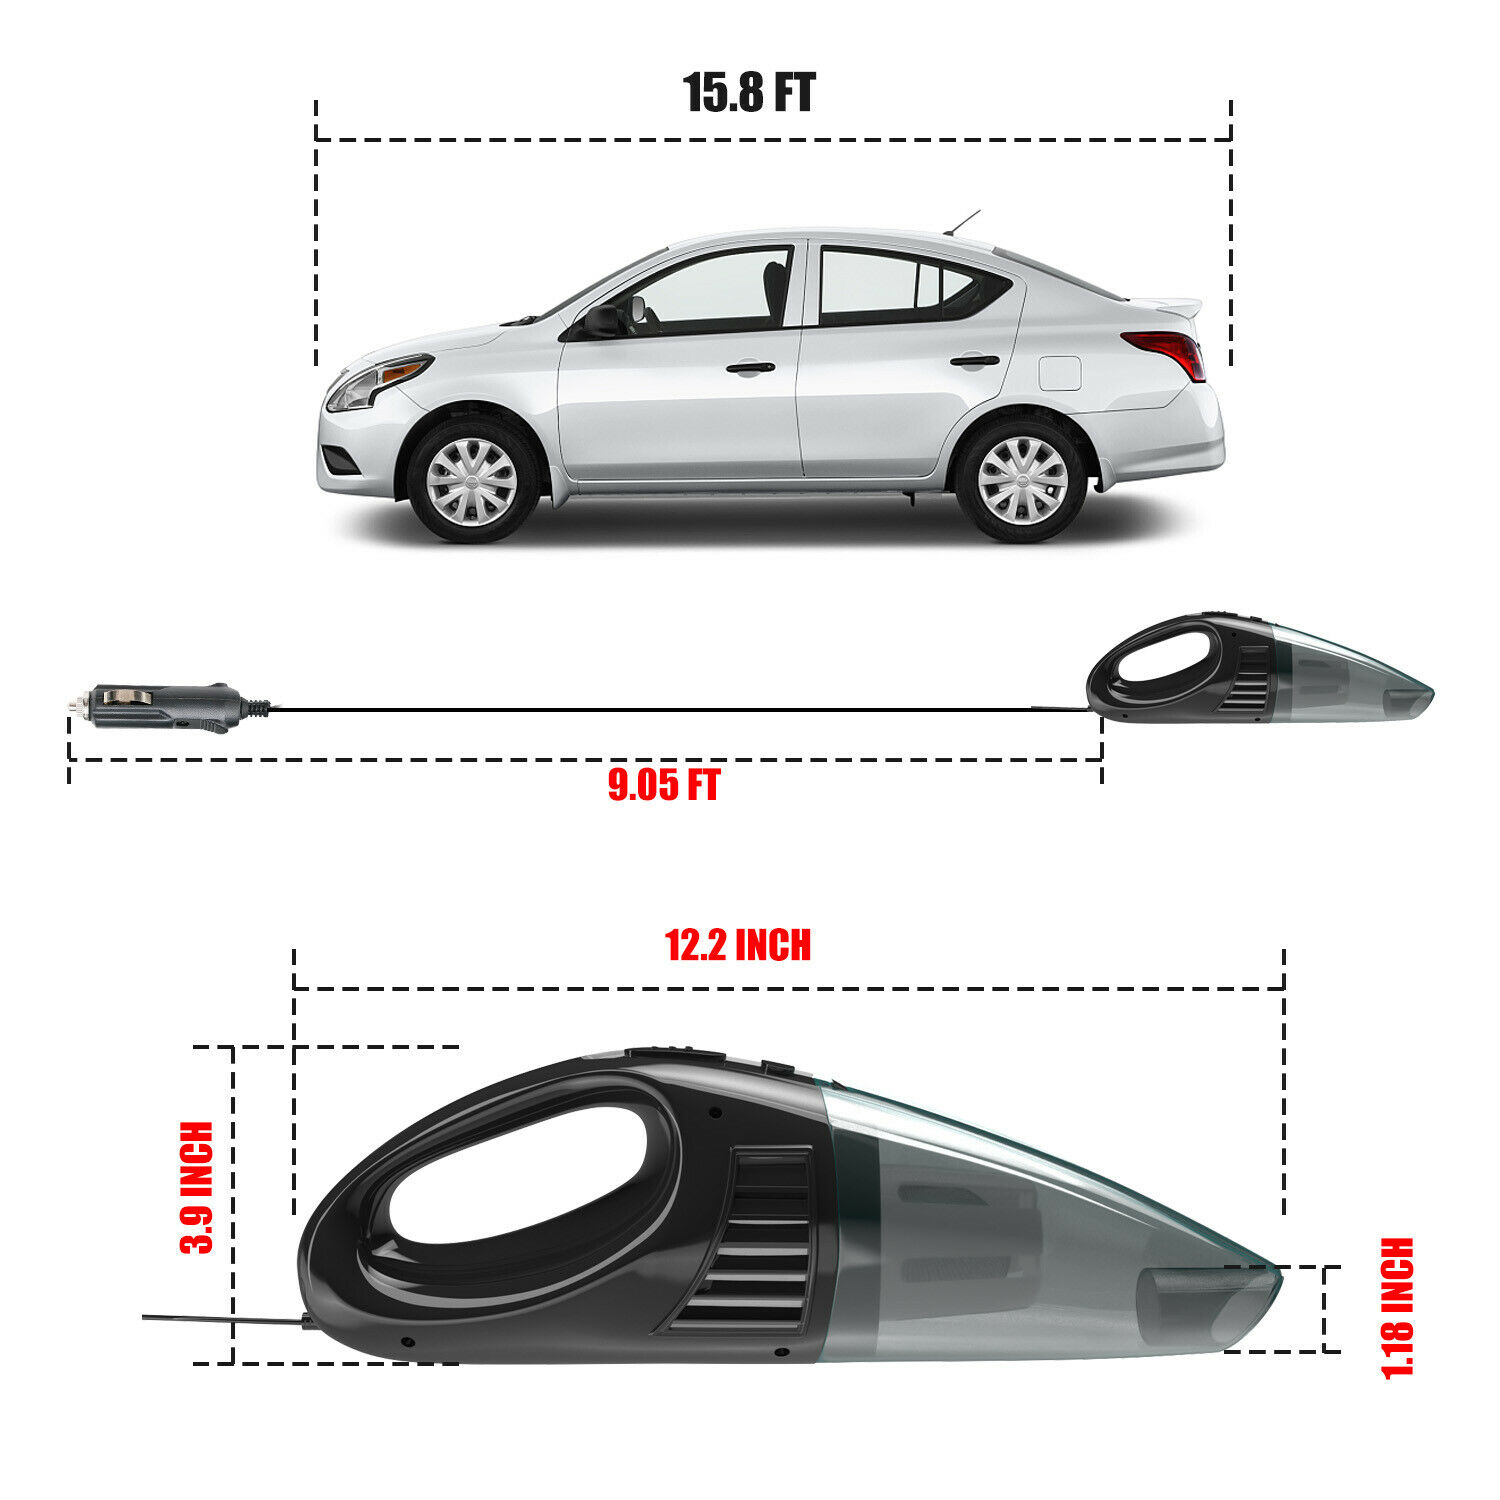 Powerful Car Vacuum Cleaner Portable Home Wet & Dry Handheld Strong Suction 12V Automotive Care & Detailing